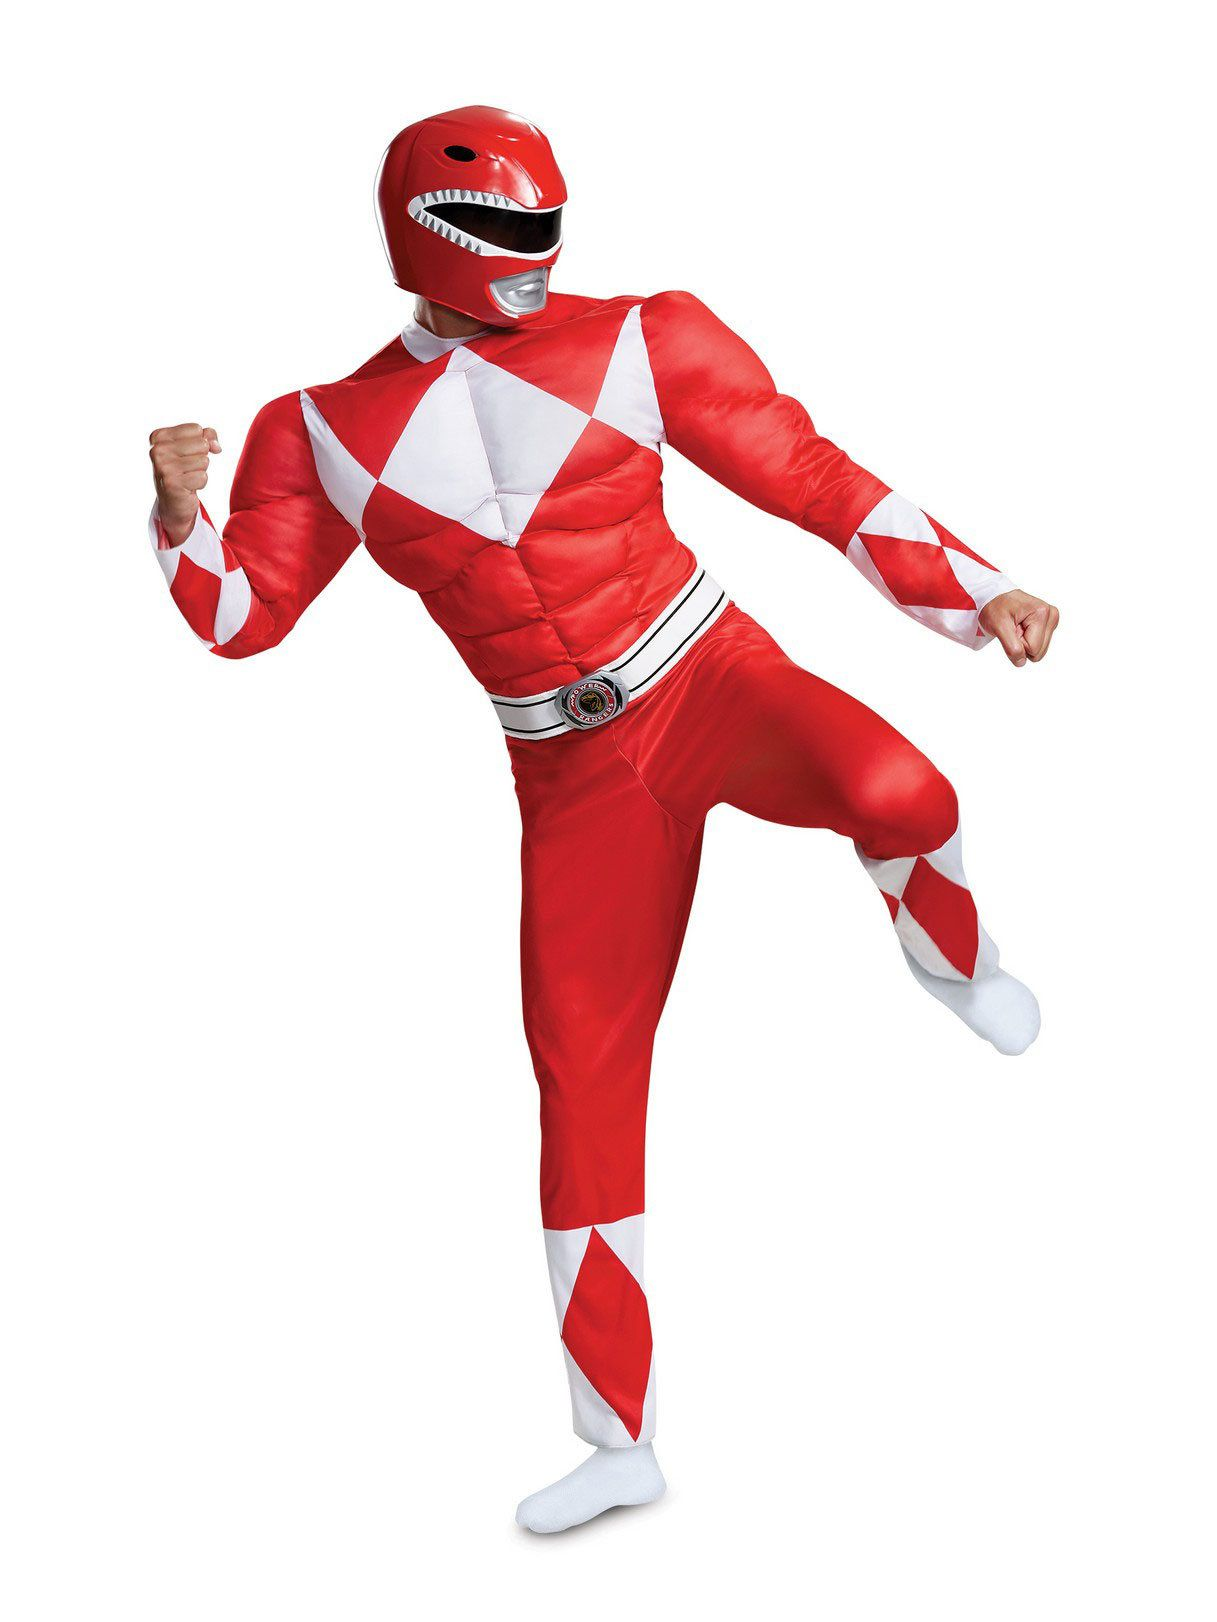 Mighty Morphin Power Rangers Muscle Classic Red Ranger Costume for Adults  sc 1 st  Wholesale Halloween Costumes & Mighty Morphin Power Rangers Muscle Classic Red Ranger Costume for ...